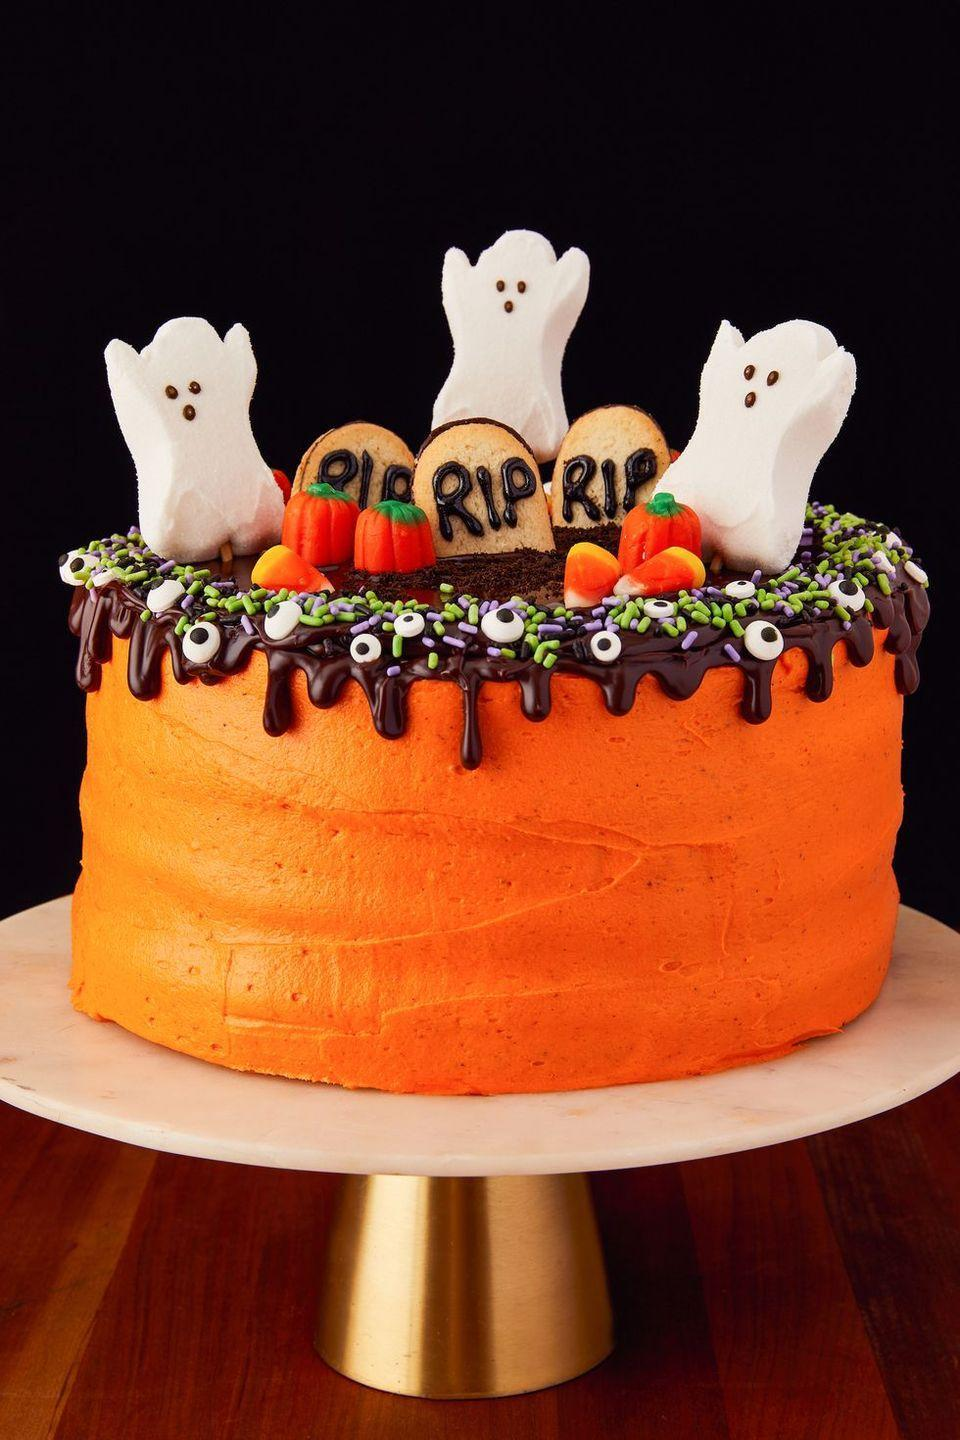 """<p>The ultimate Halloween cake. </p><p>Get the recipe from <a href=""""https://www.delish.com/cooking/recipe-ideas/a23712647/halloween-layer-cake-recipe/"""" rel=""""nofollow noopener"""" target=""""_blank"""" data-ylk=""""slk:Delish"""" class=""""link rapid-noclick-resp"""">Delish</a>. </p>"""